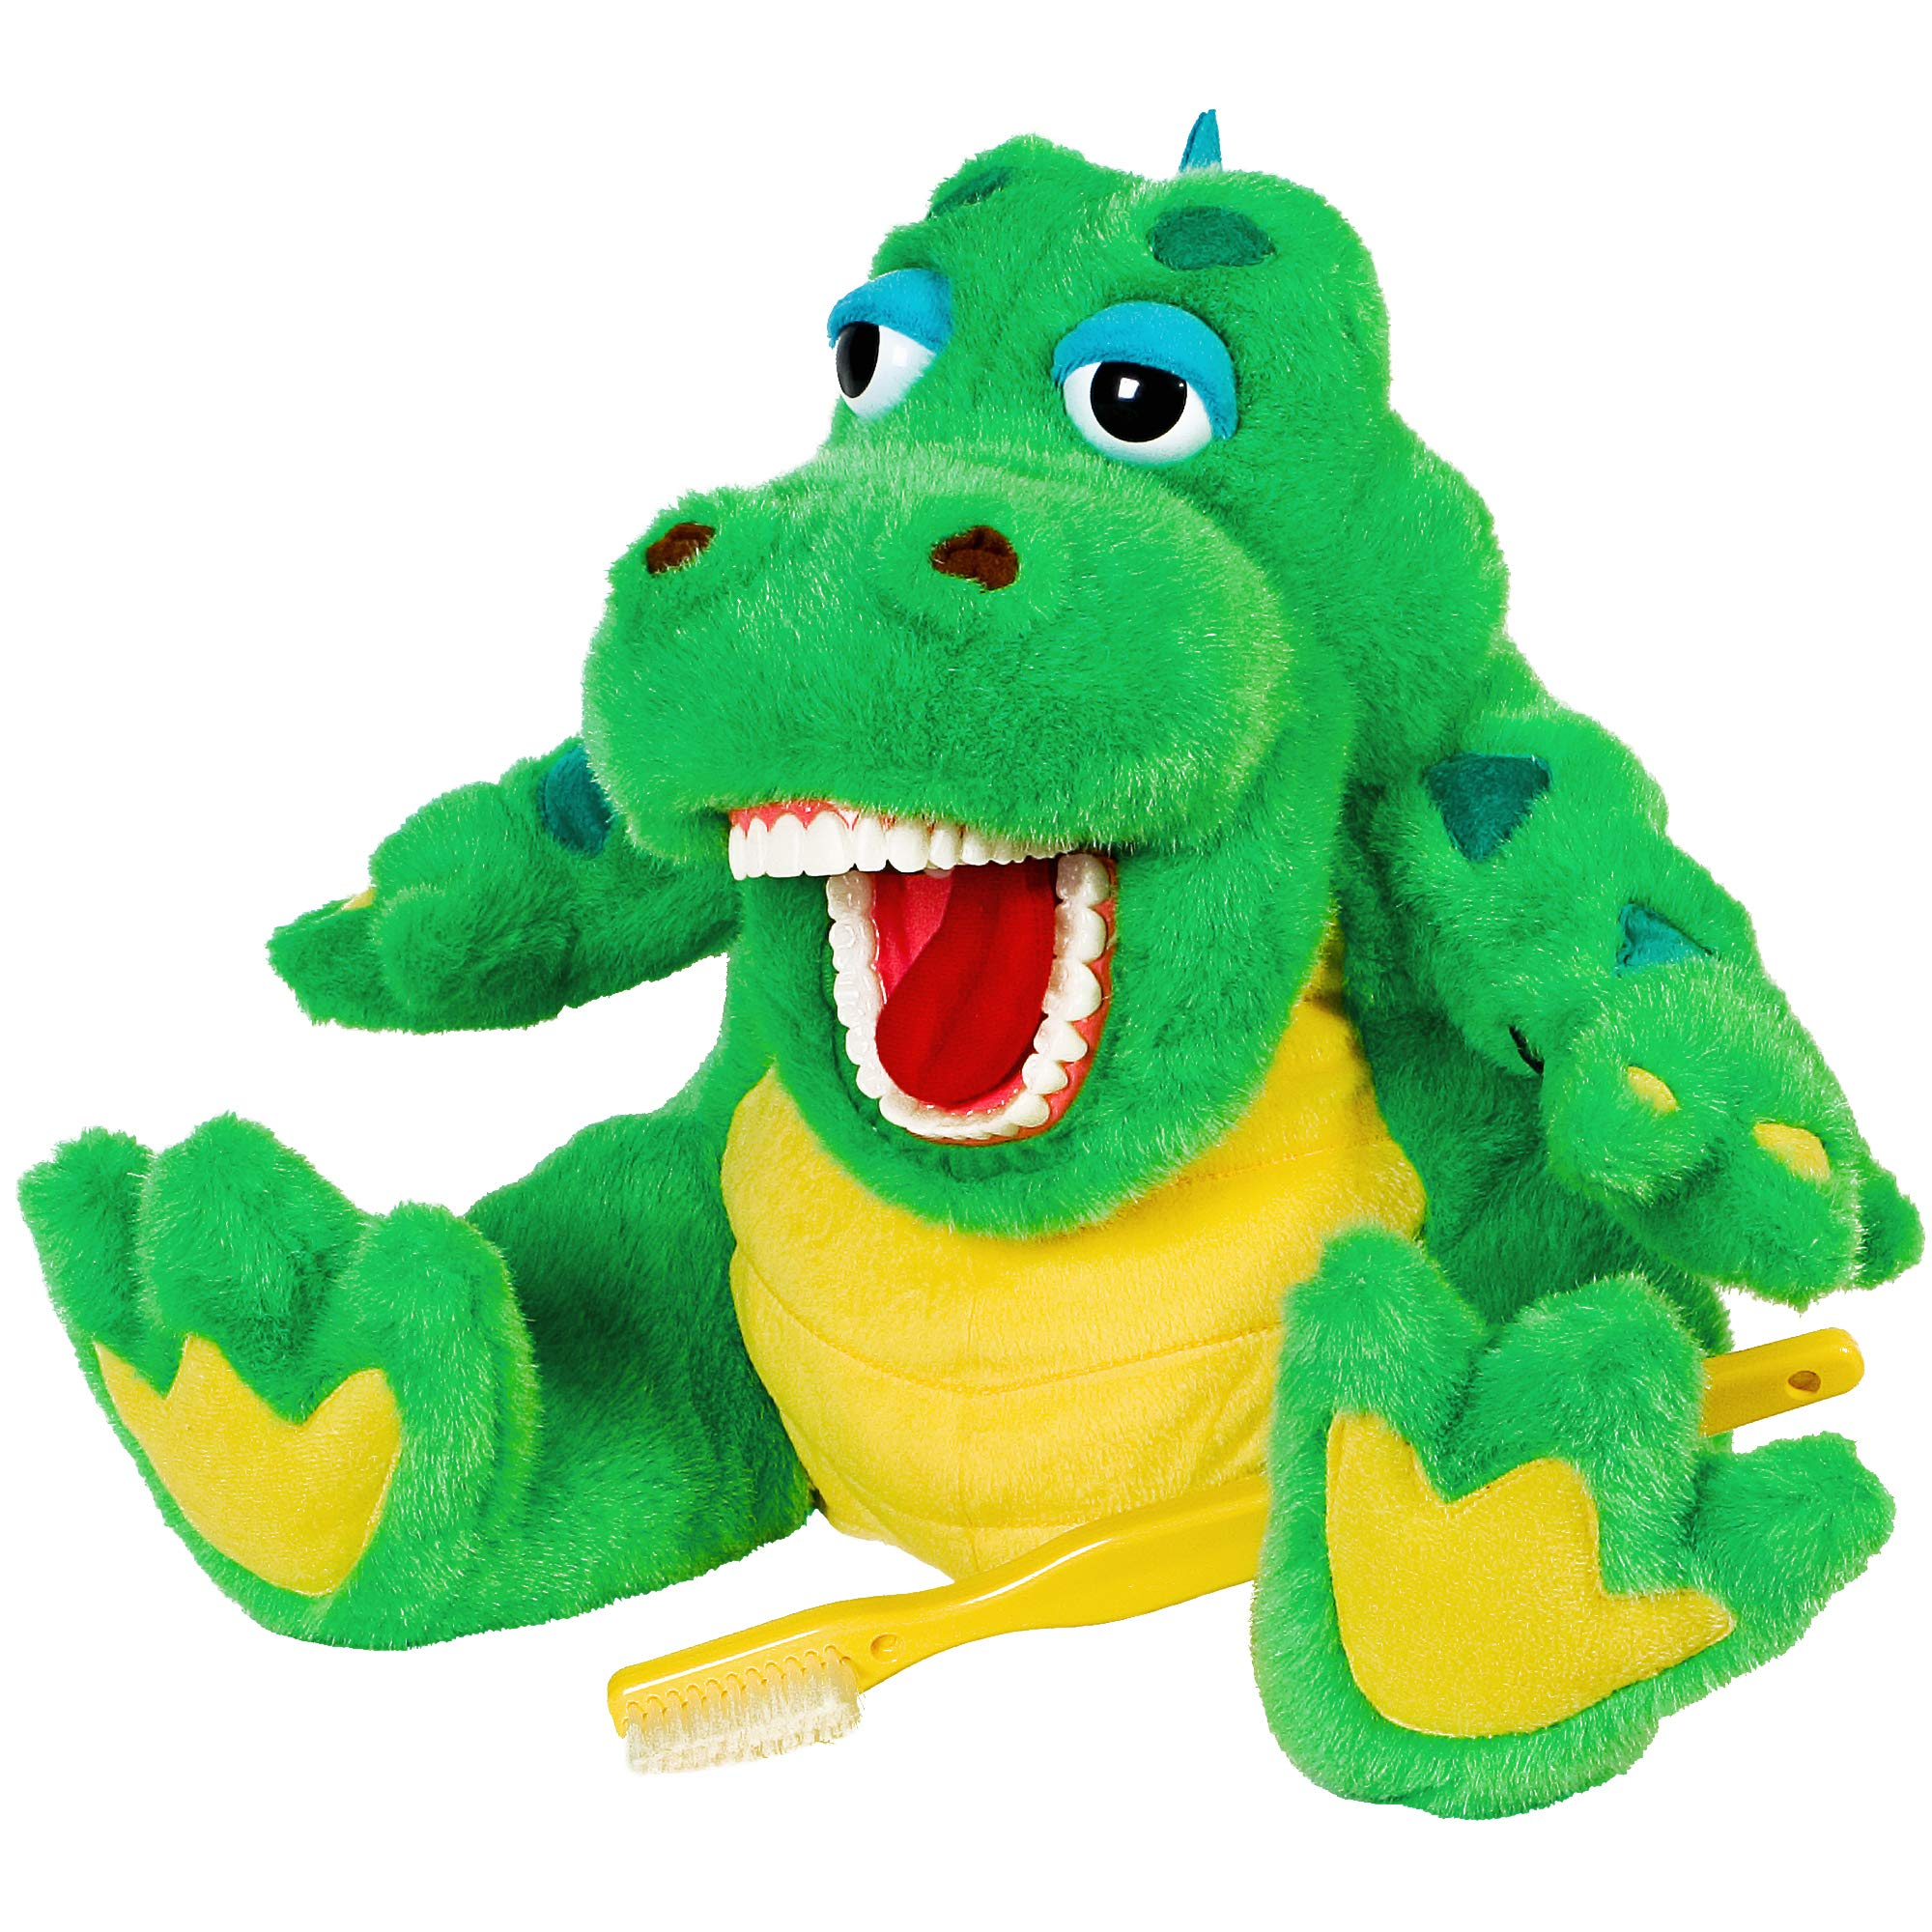 StarSmilez Kids Tooth Brushing Buddy Al E Gator - Plush Dental Education Helper Fully flossible - Present / Teach Children to Care for Mouth and Teeth